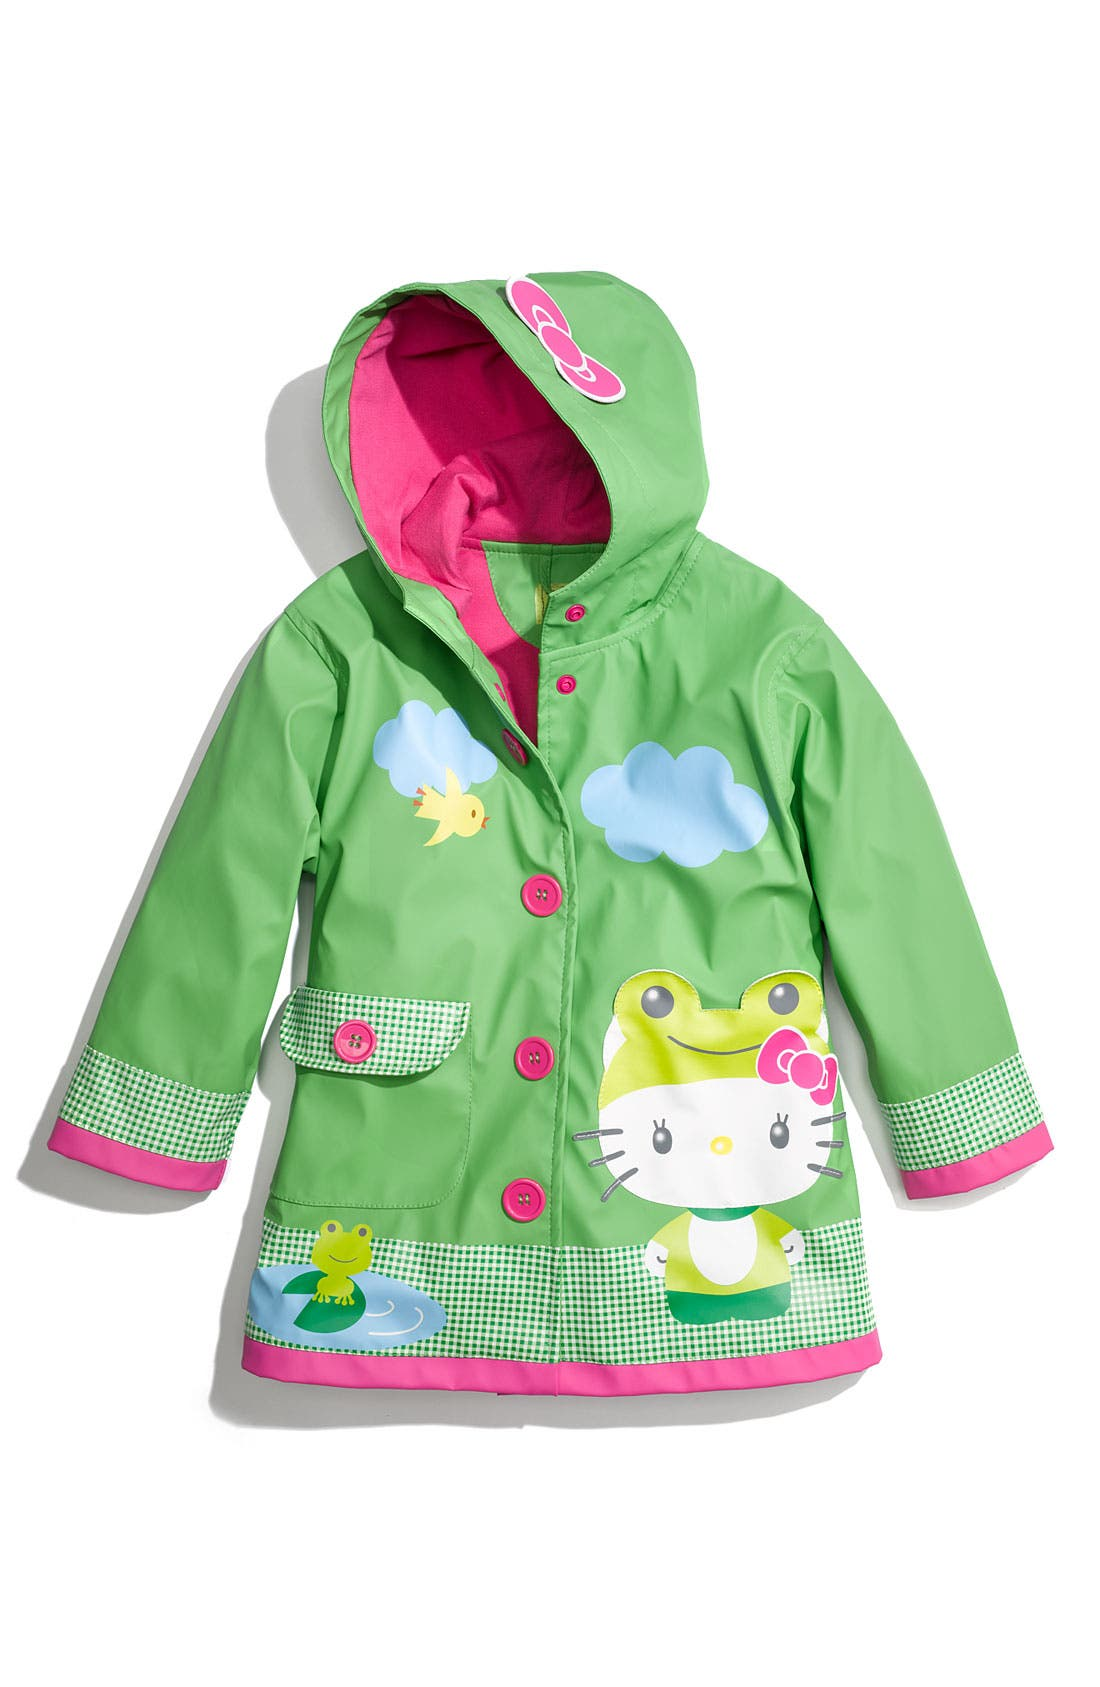 Main Image - Western Chief 'Hello Kitty® Froggy' Raincoat (Toddler Girls & Little Girls)